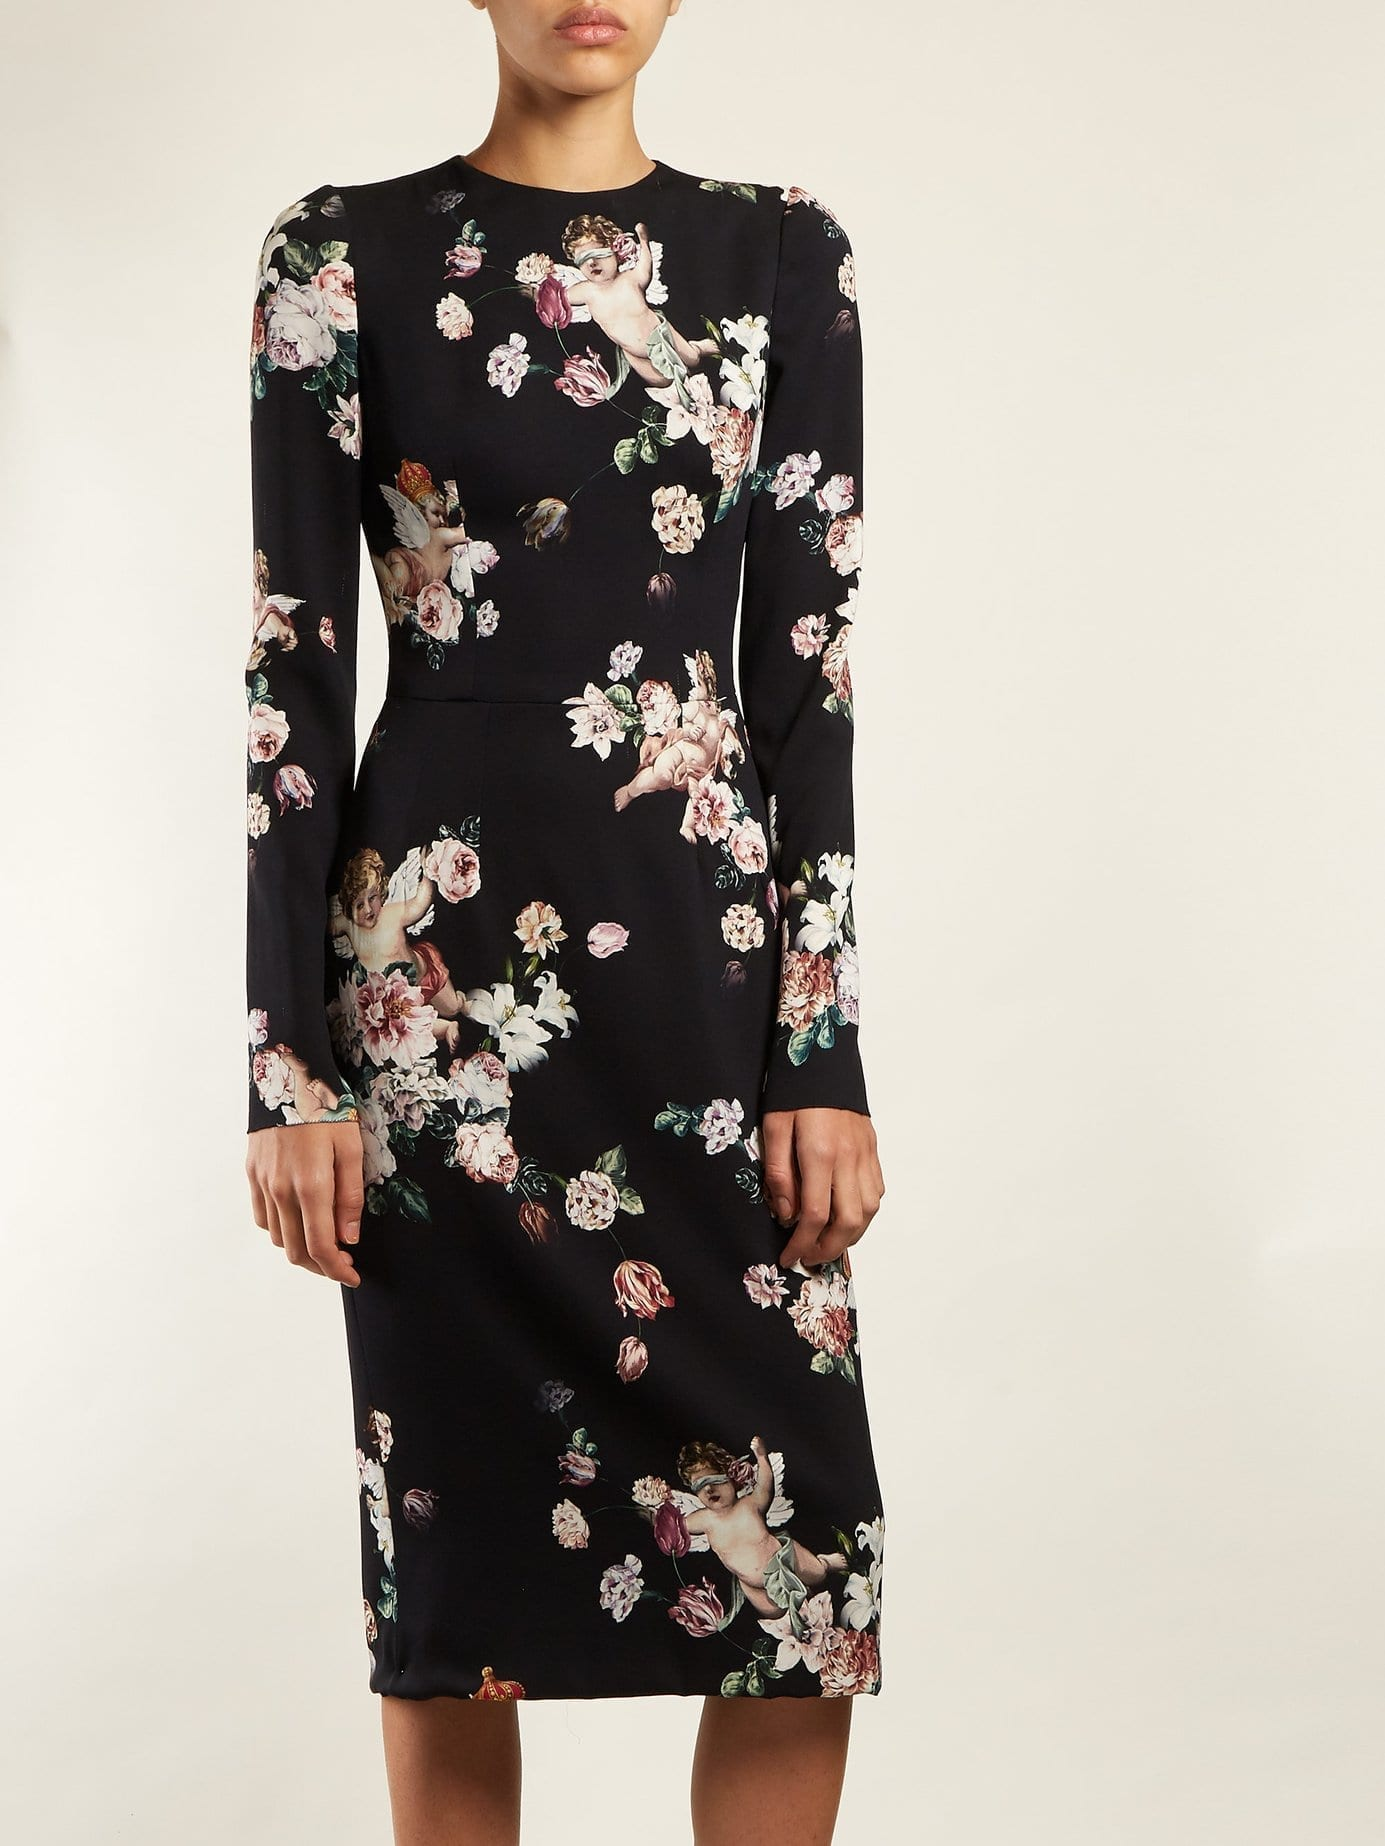 DOLCE & GABBANA Angel And Midi Black / Floral Printed Dress